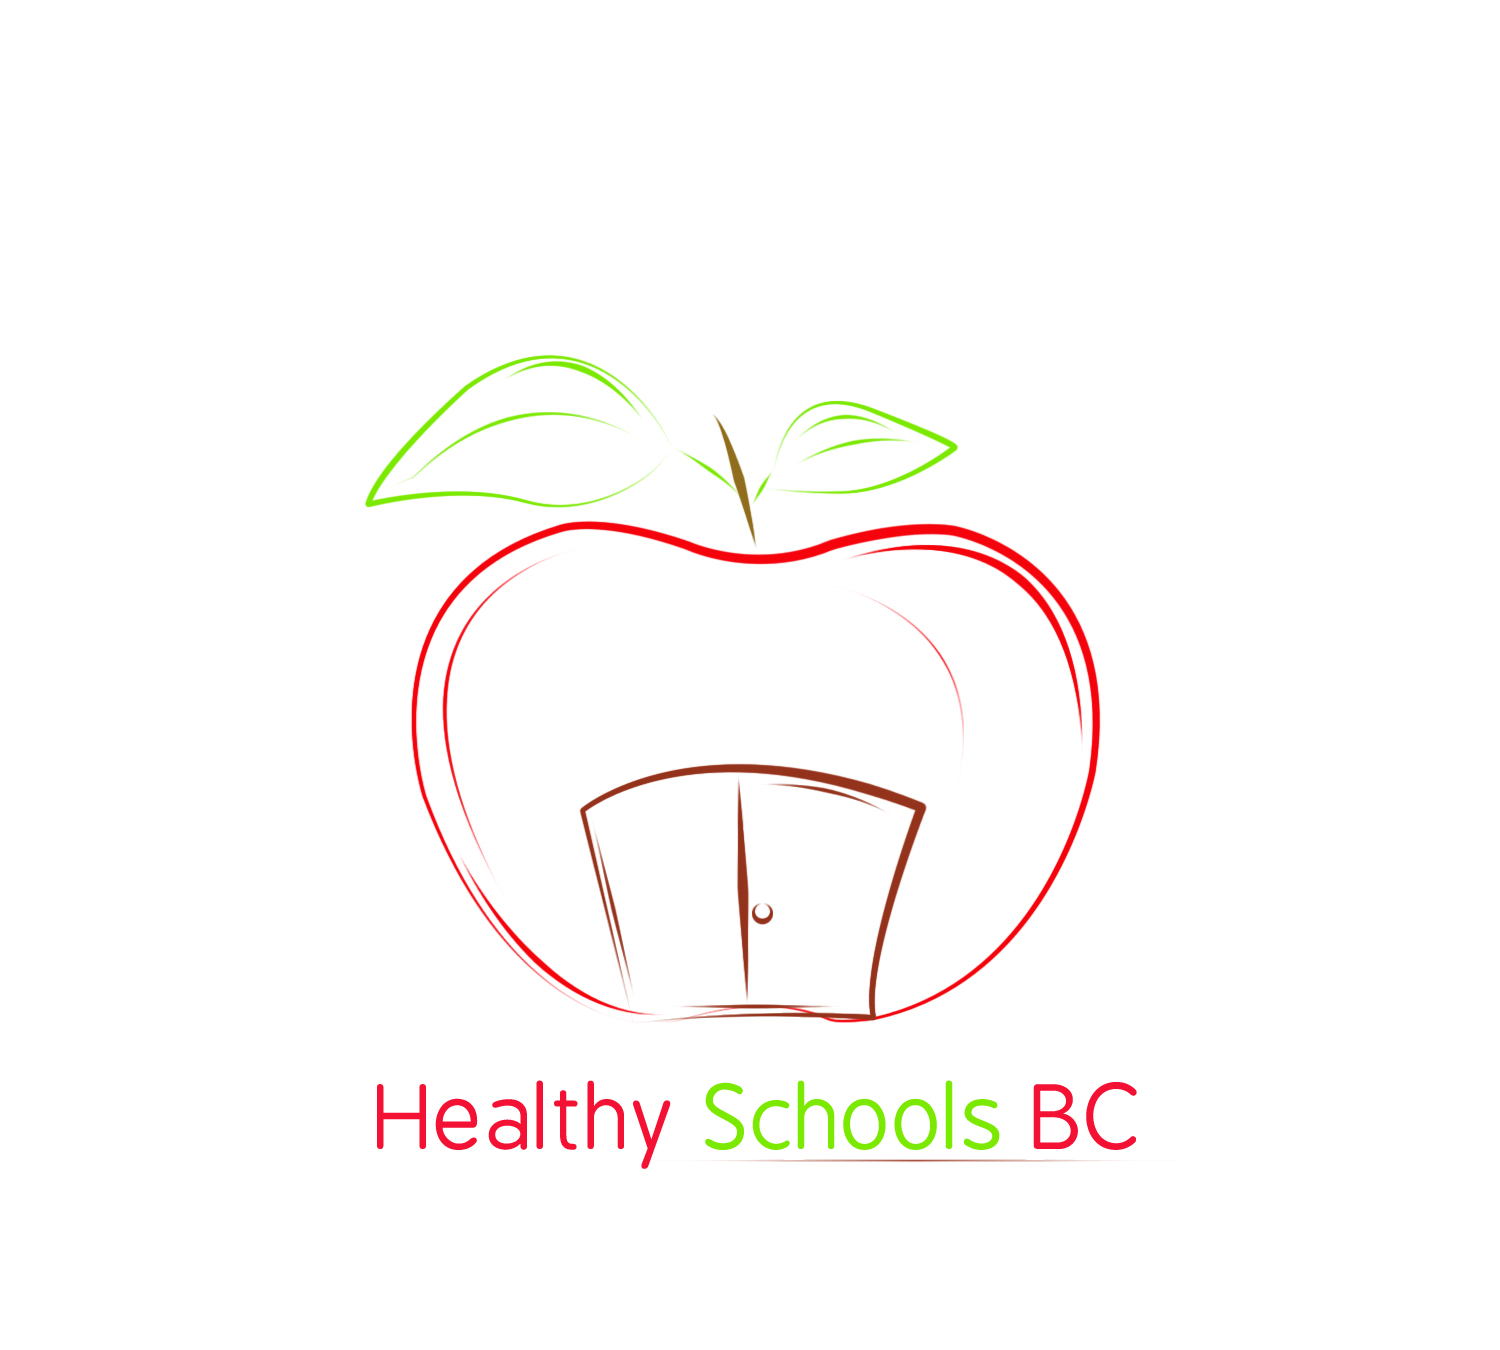 Logo Design by Uroob Rubbani - Entry No. 209 in the Logo Design Contest SImple, Creative and Clean Logo Design for Healthy Schools British Columbia, Canada.